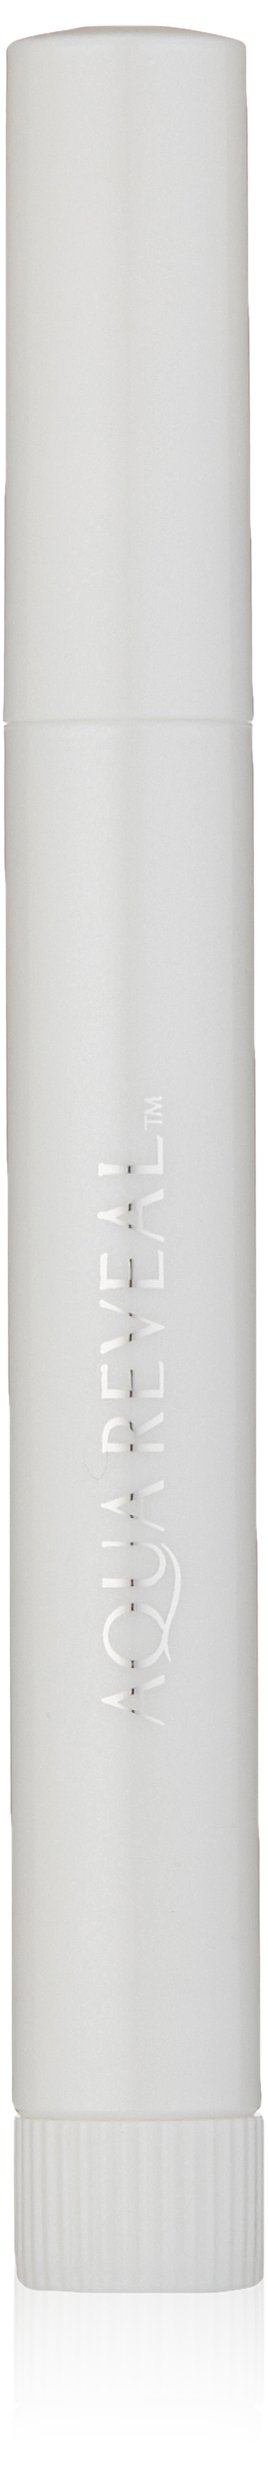 Aquareveal Smooth Talker Water Peel for Lips, 3.5 g.